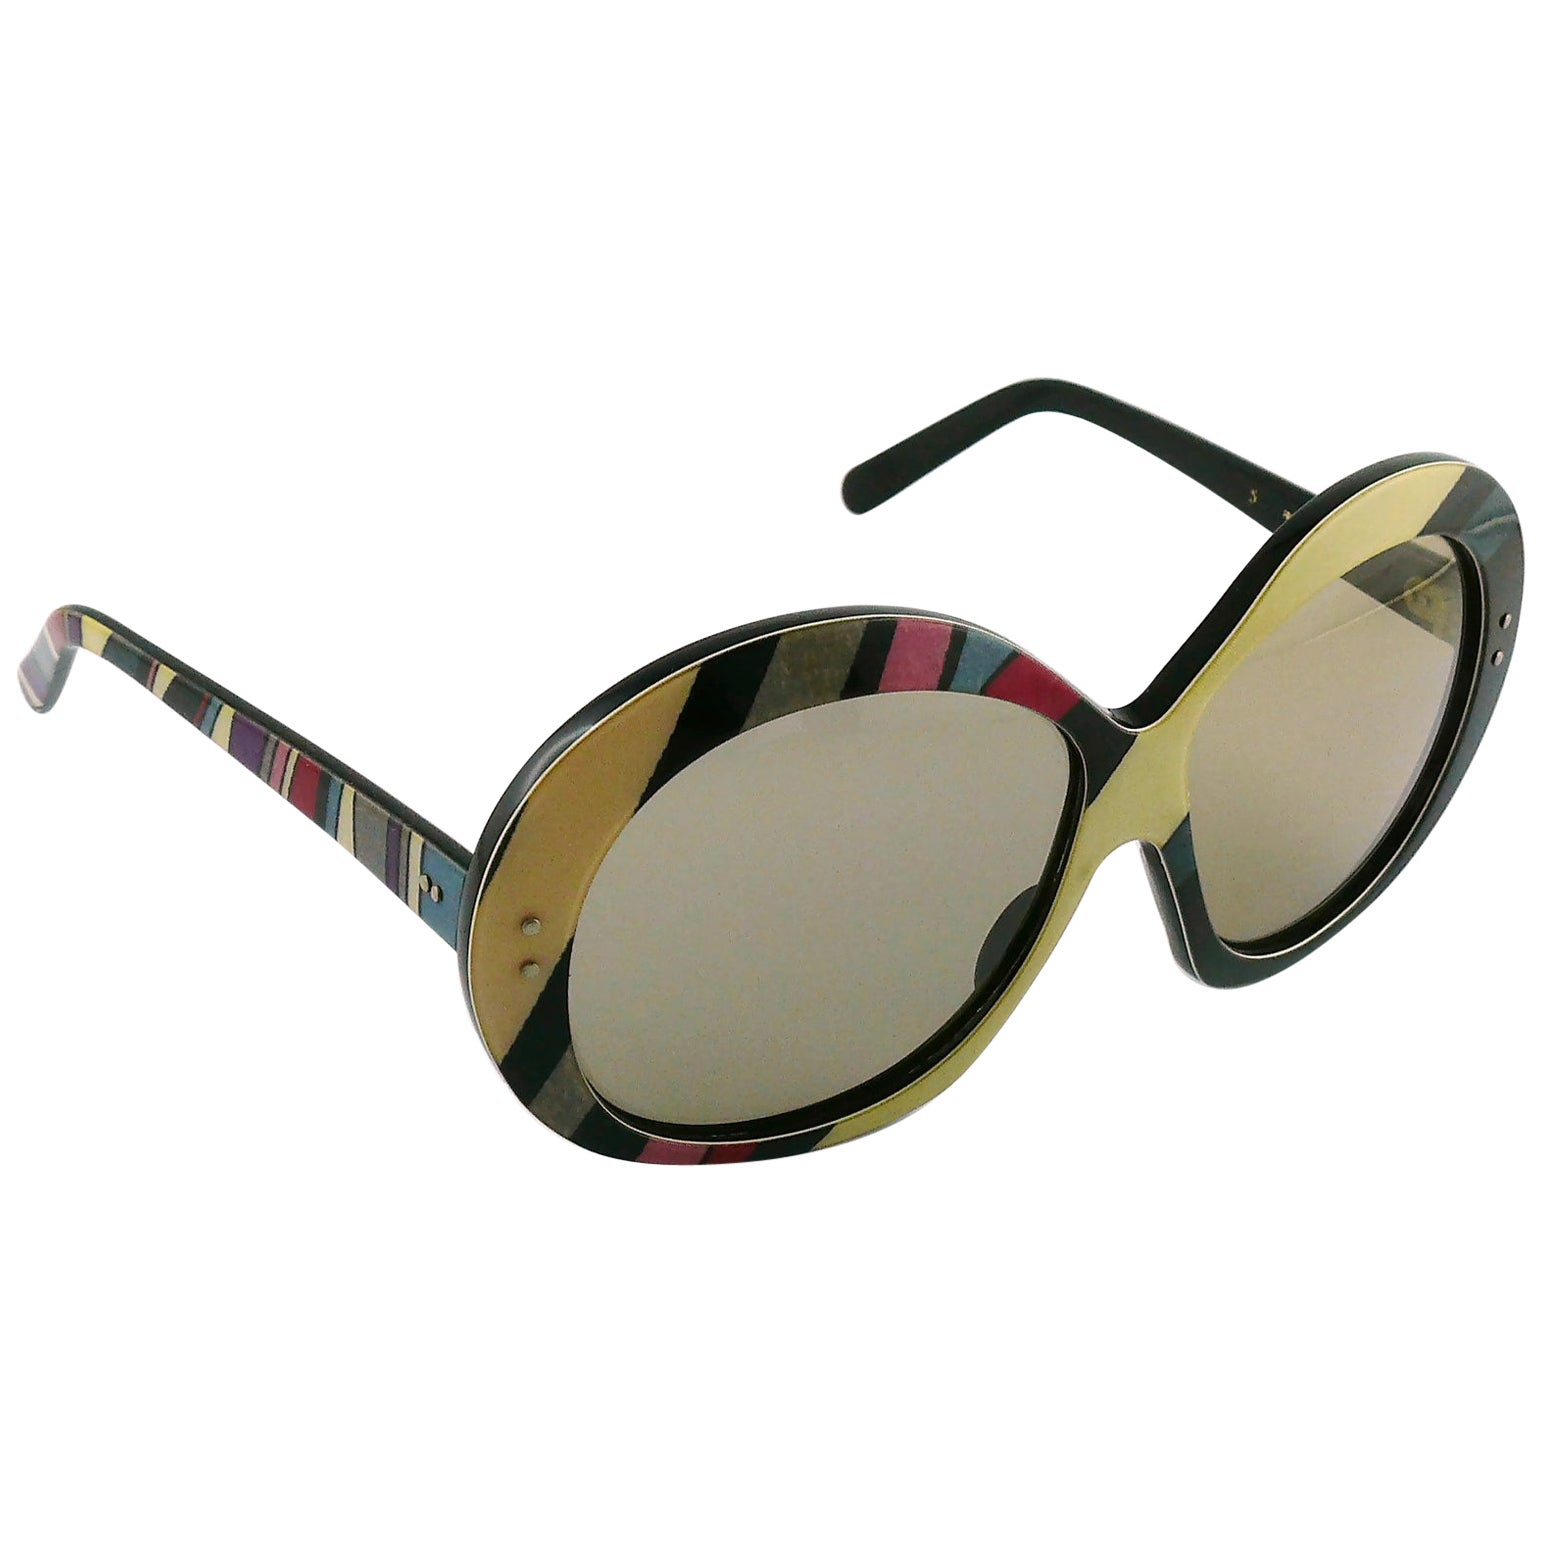 Emilio Pucci Vintage Oversized Iconic Psychedelic Print Sunglasses